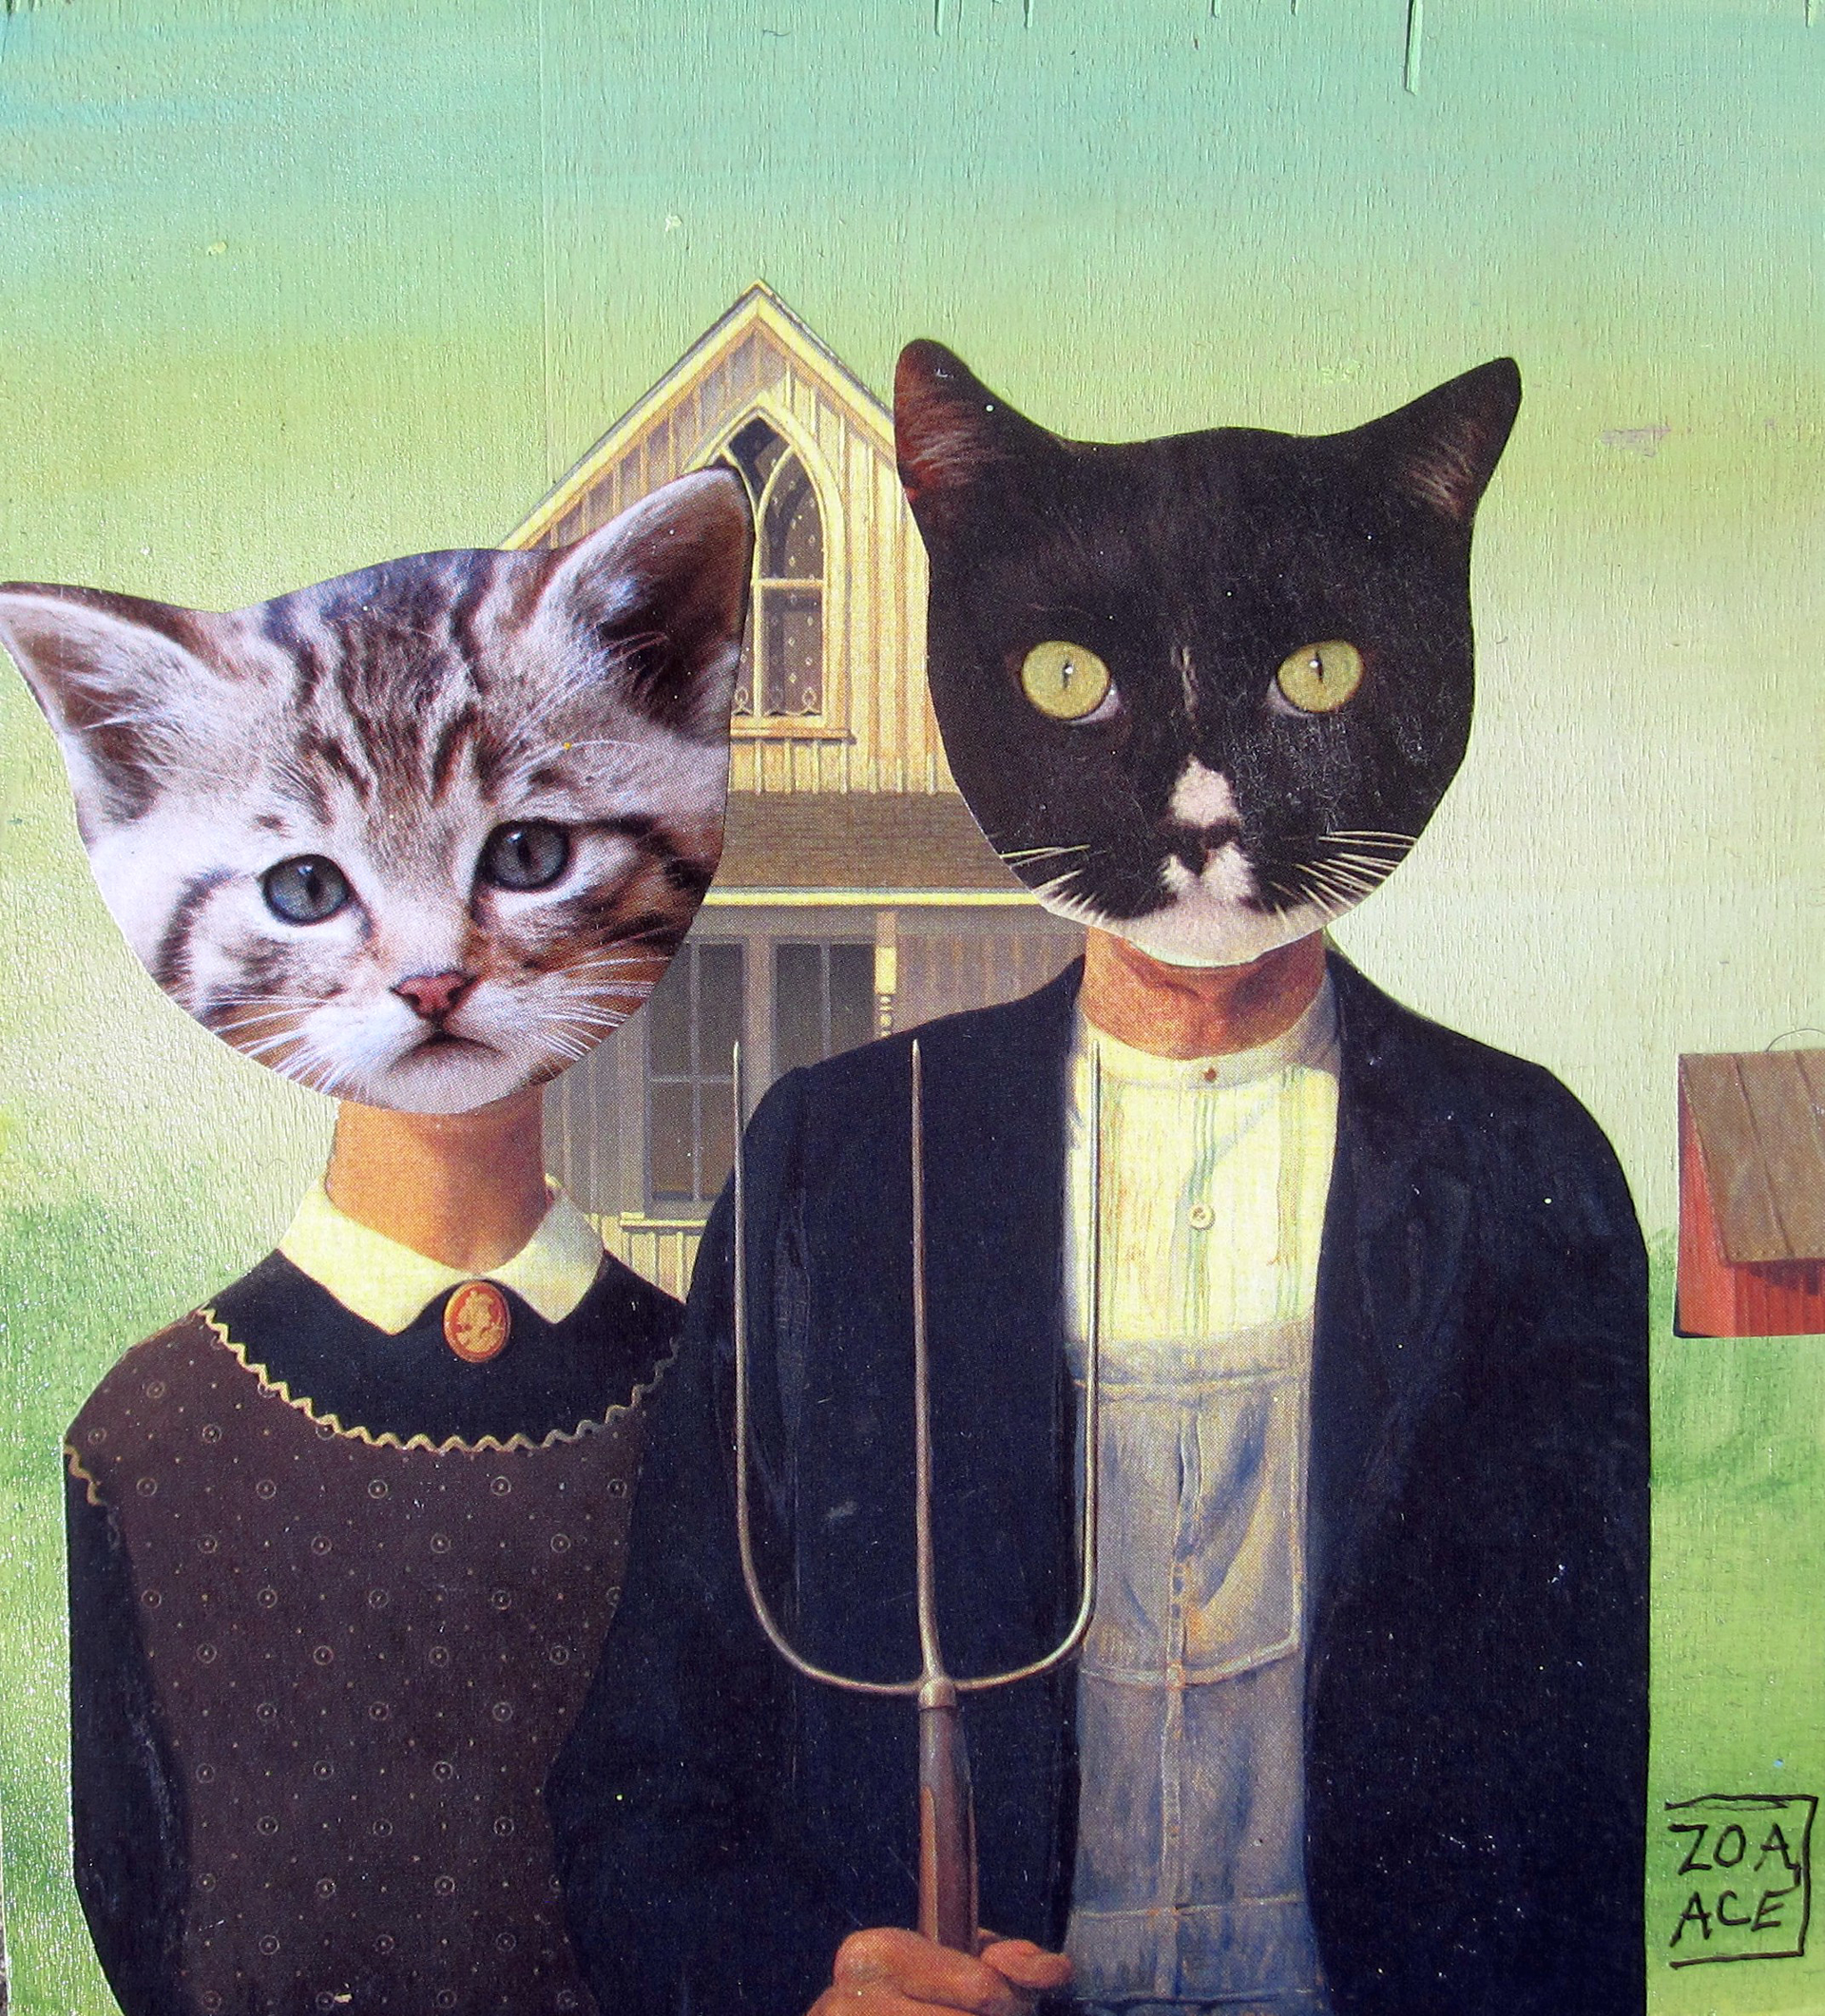 Barn Cats, Gothic by Zoa Ace